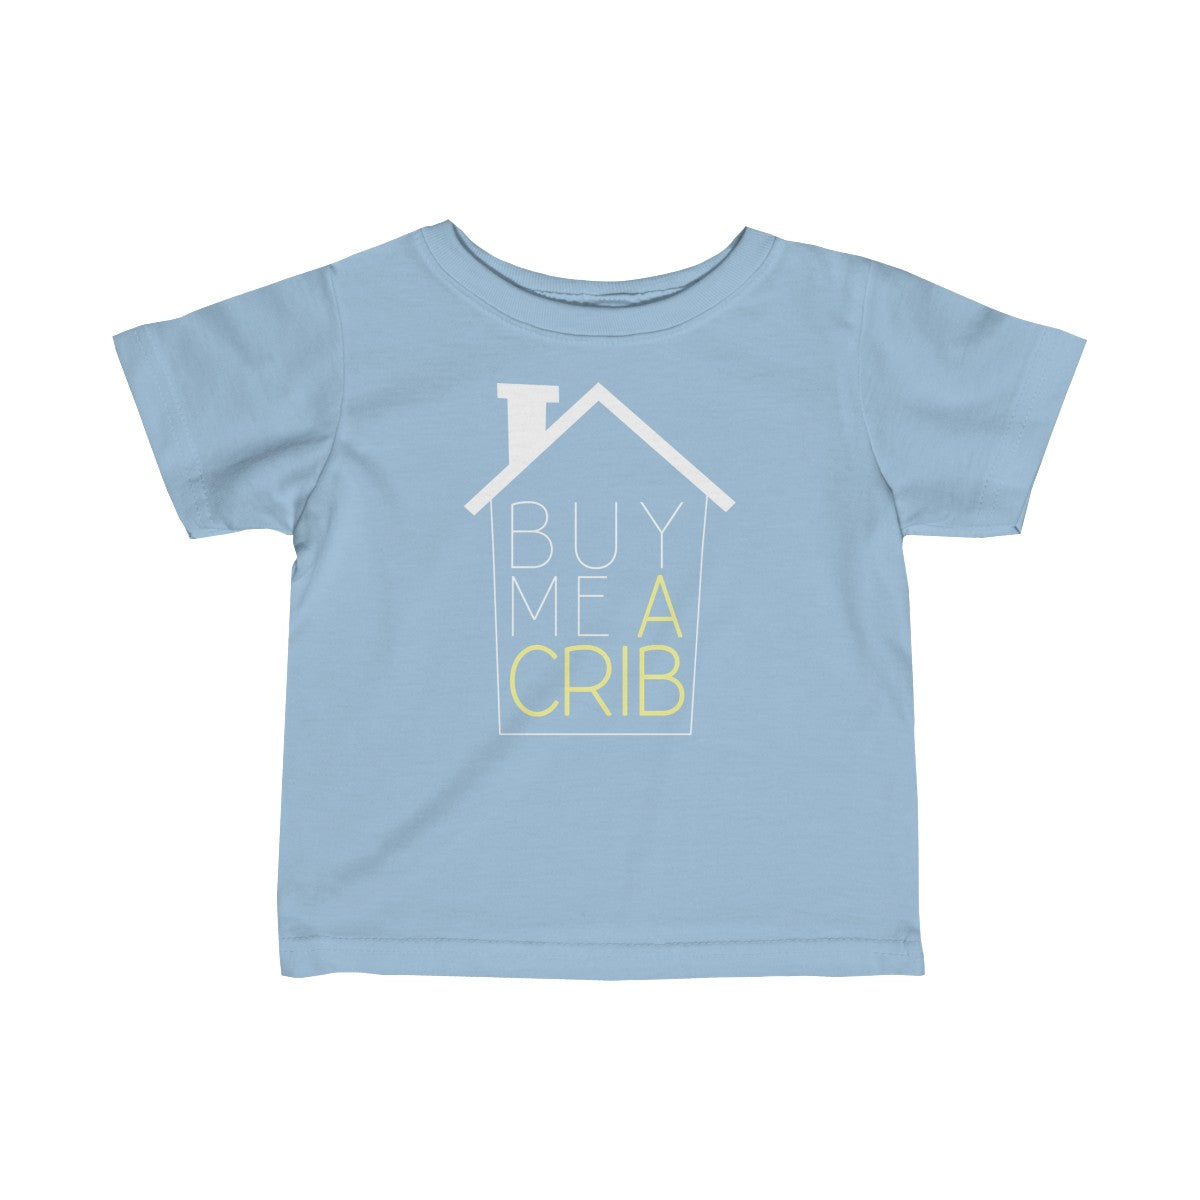 Buy Me A Crib™ Infant Jersey Tee